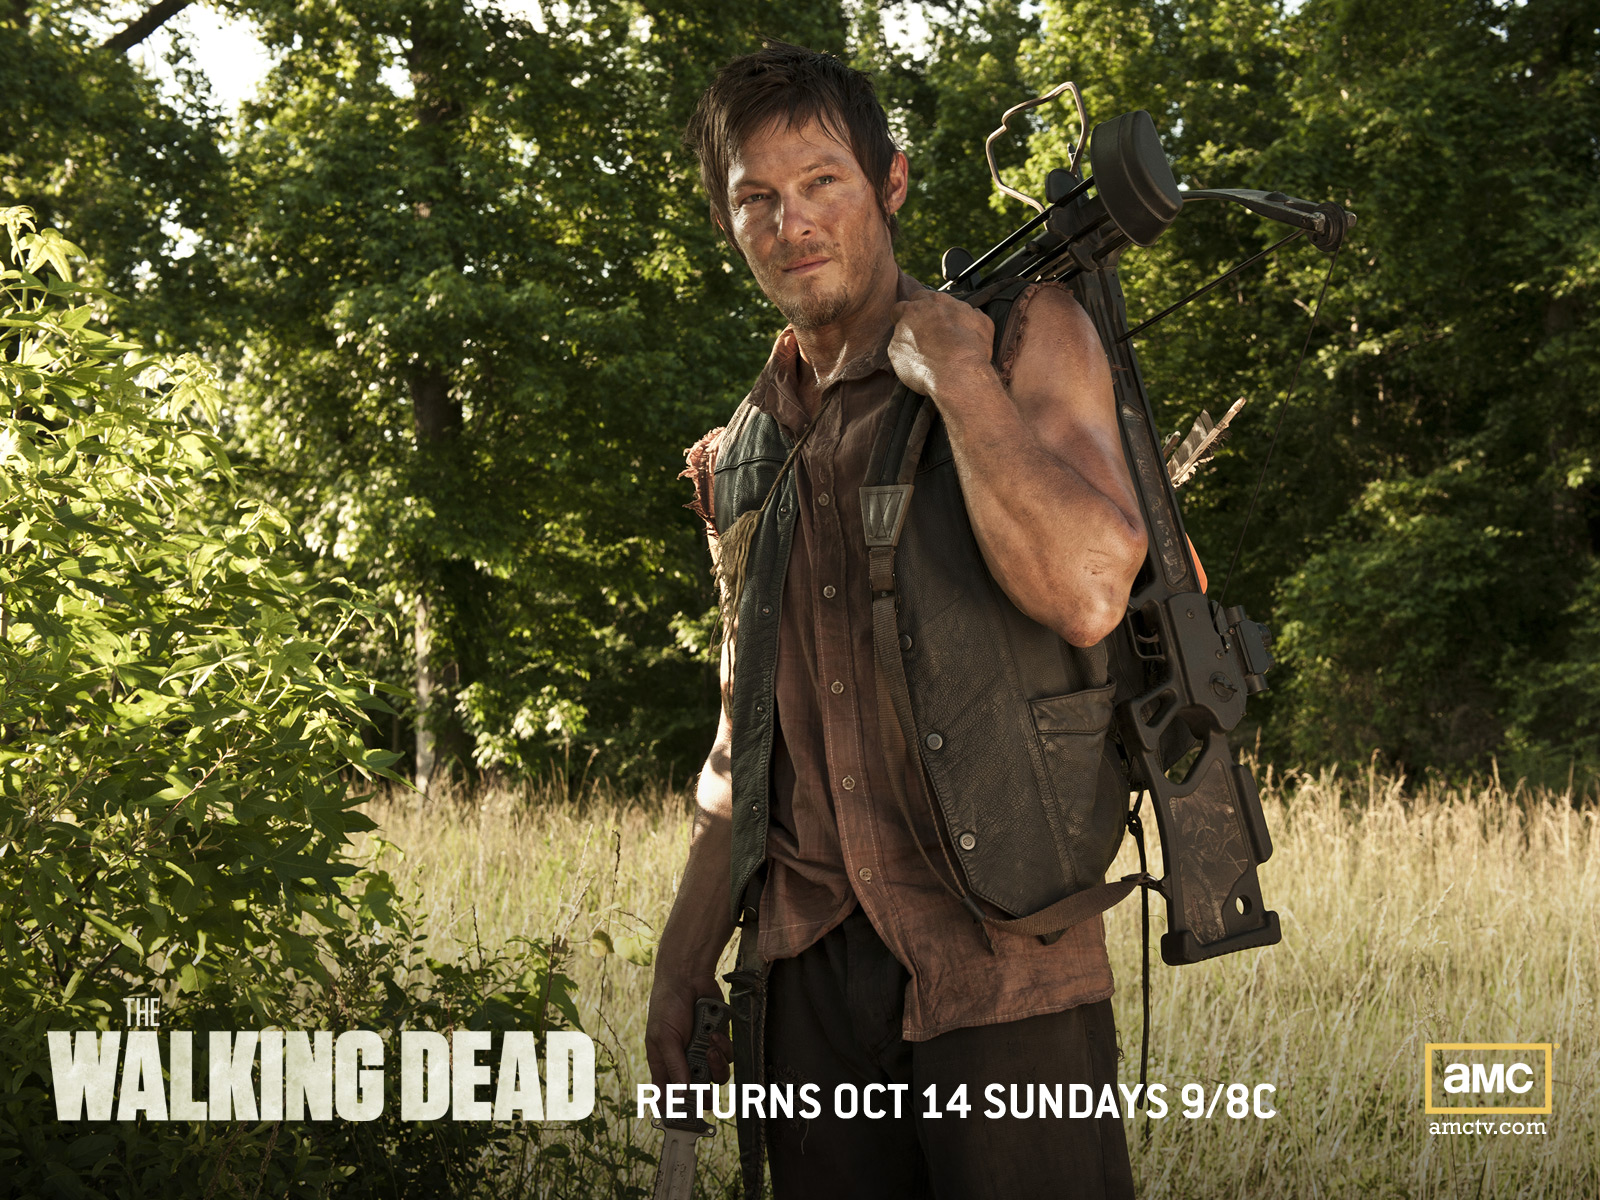 Daryl The Walking Dead Wallpaper 1600x1200 56738